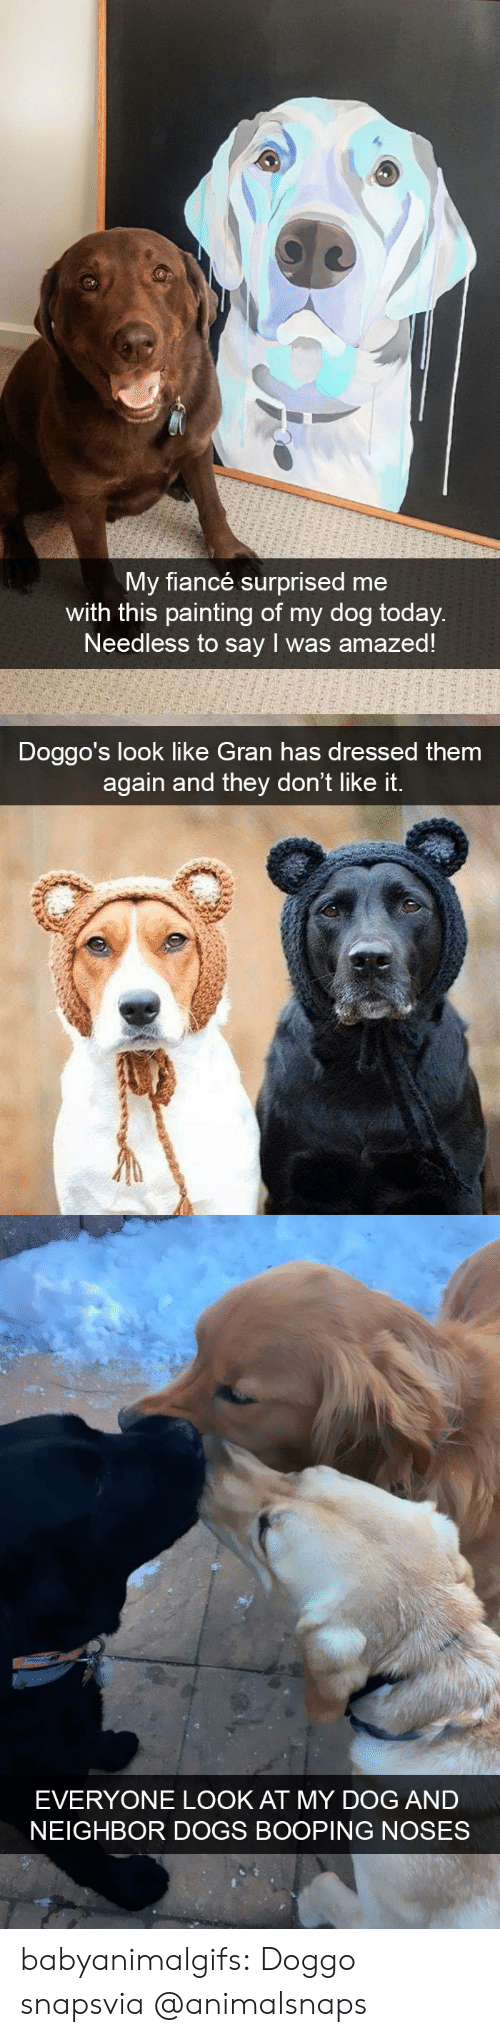 Dont Like It: My fiancé surprised me  with this painting of my dog today  Needless to say I was amazed!   Doggo's look like Gran has dressed them  again and they don't like it.   EVERYONE LOOK AT MY DOG AND  NEIGHBOR DOGS BOOPING NOSES babyanimalgifs:  Doggo snapsvia @animalsnaps